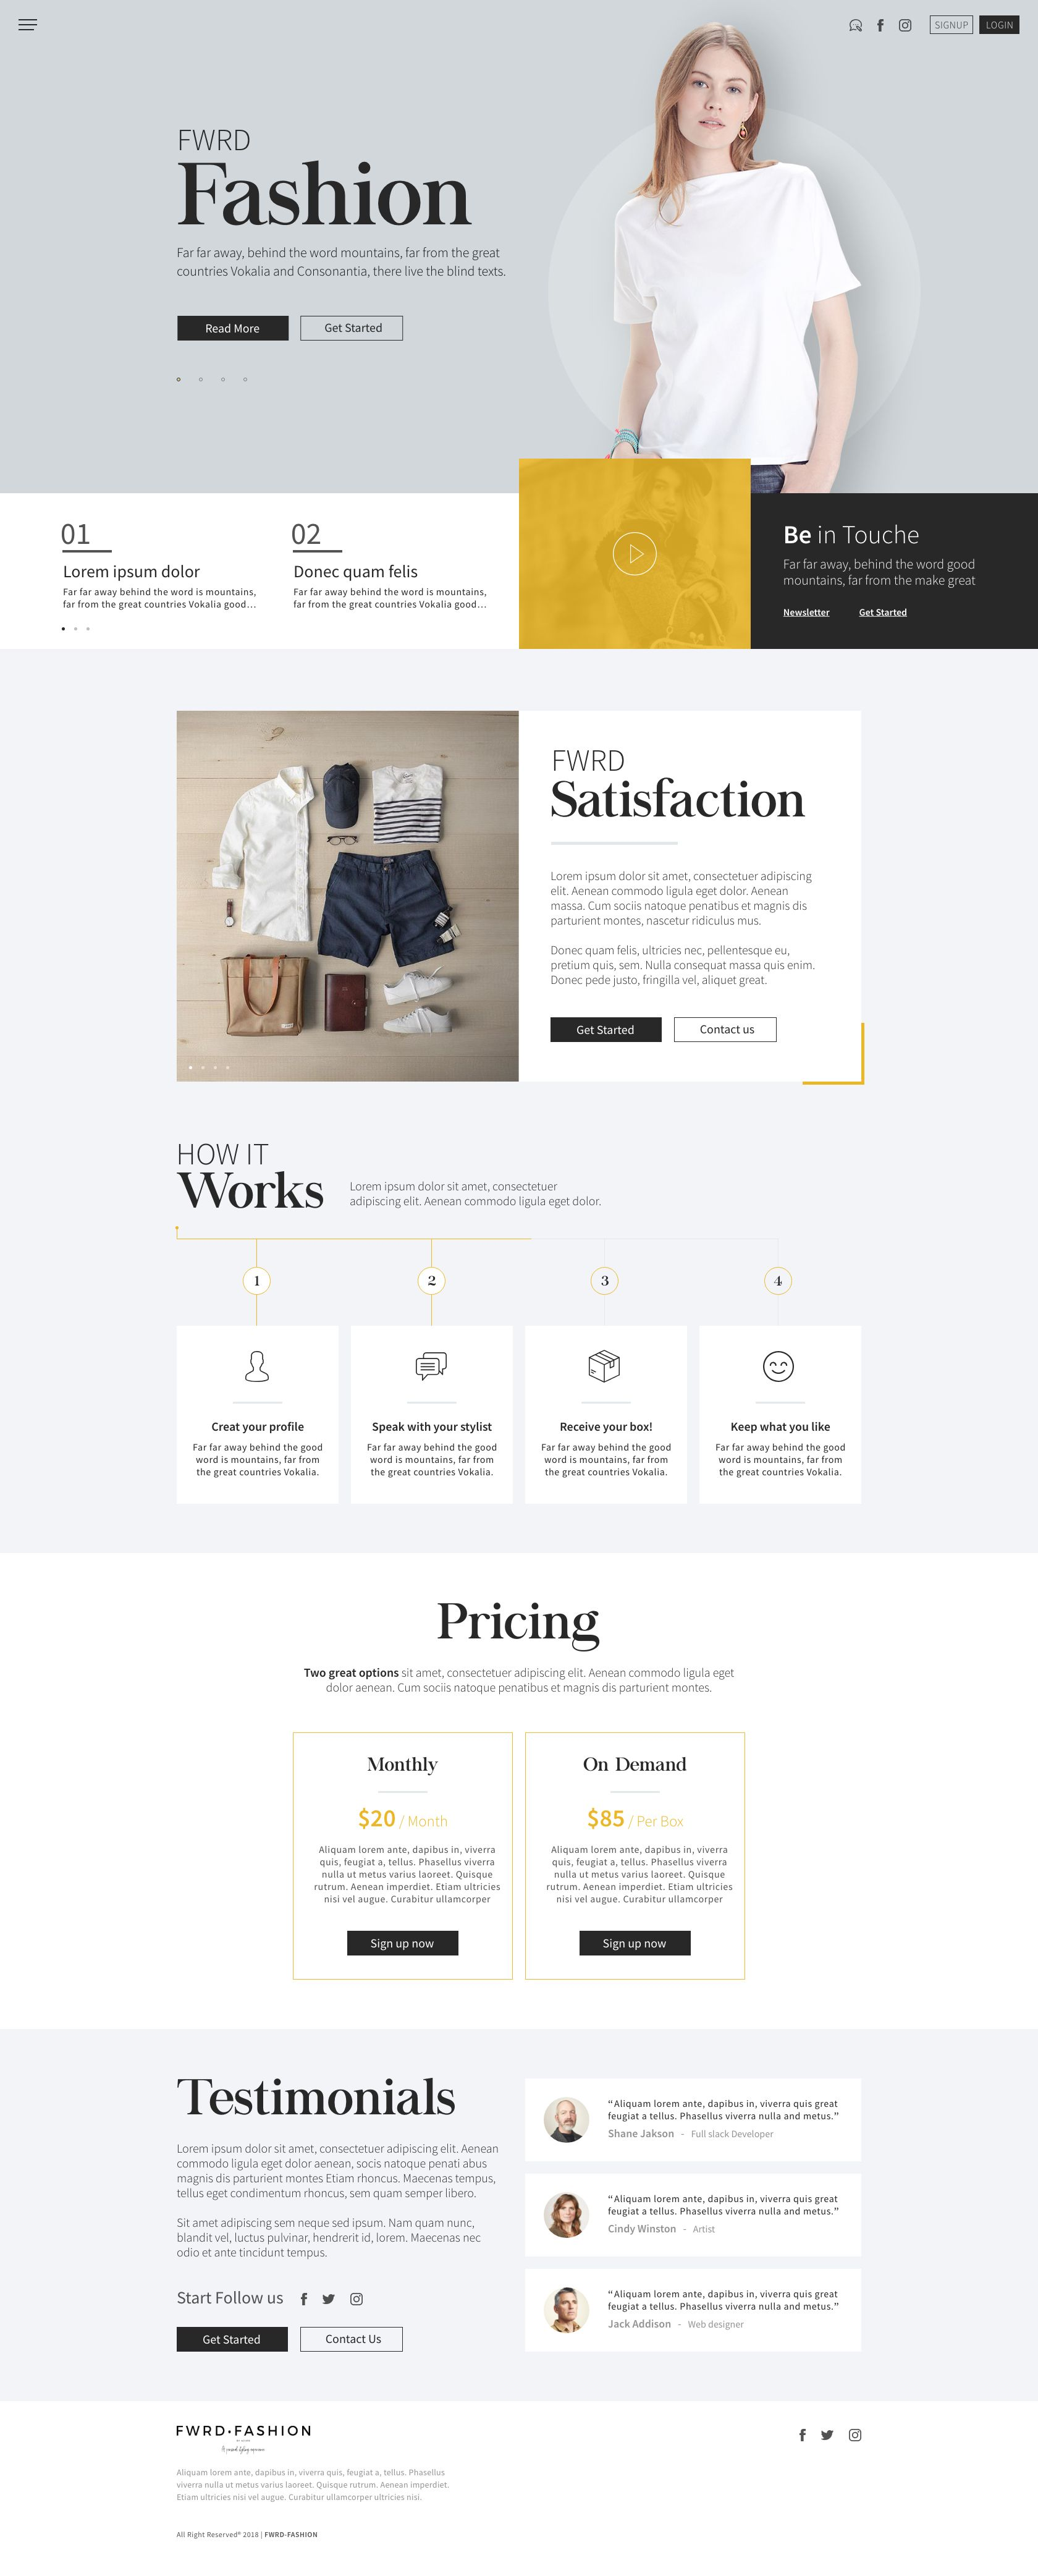 Fwrd Fashion Home Page Web Design Plus Frontend Development With A Clean Lighten Yellow Style Designe Fashion Web Design Web Design Jobs Web Layout Design